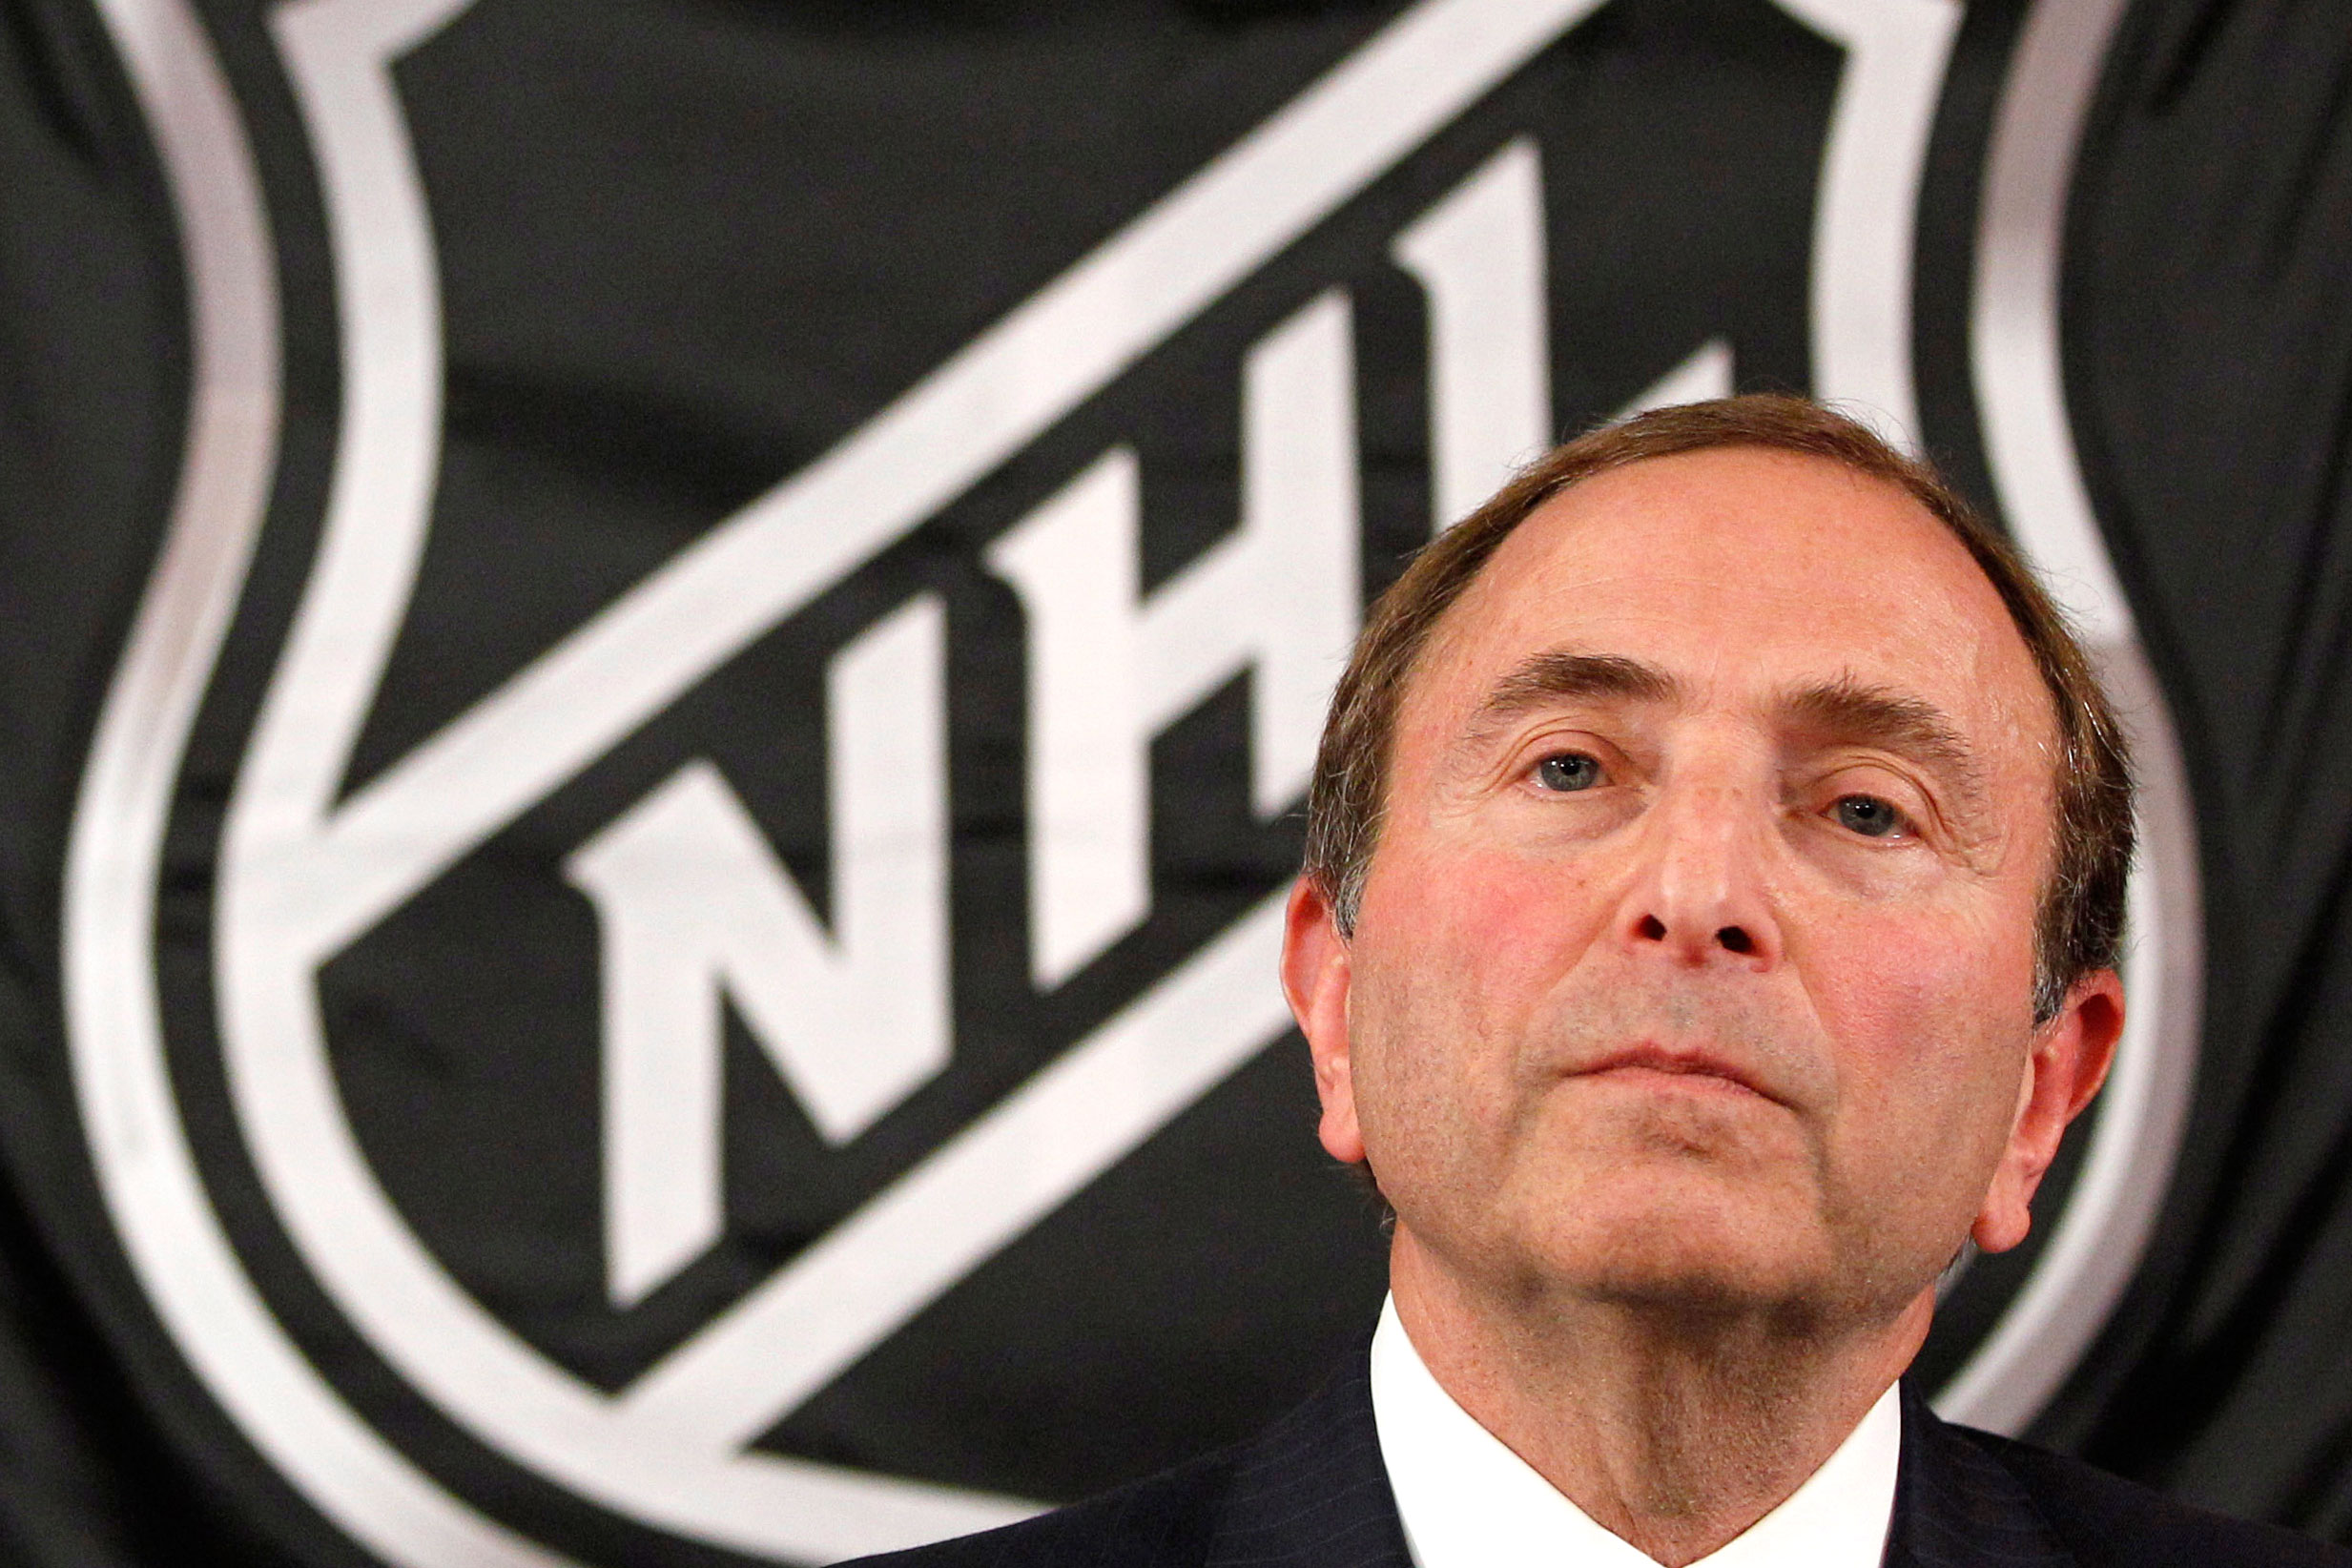 The NHL is taking steps to combat abusive behavior in hockey weeks after a coach resigned for using a racial slur